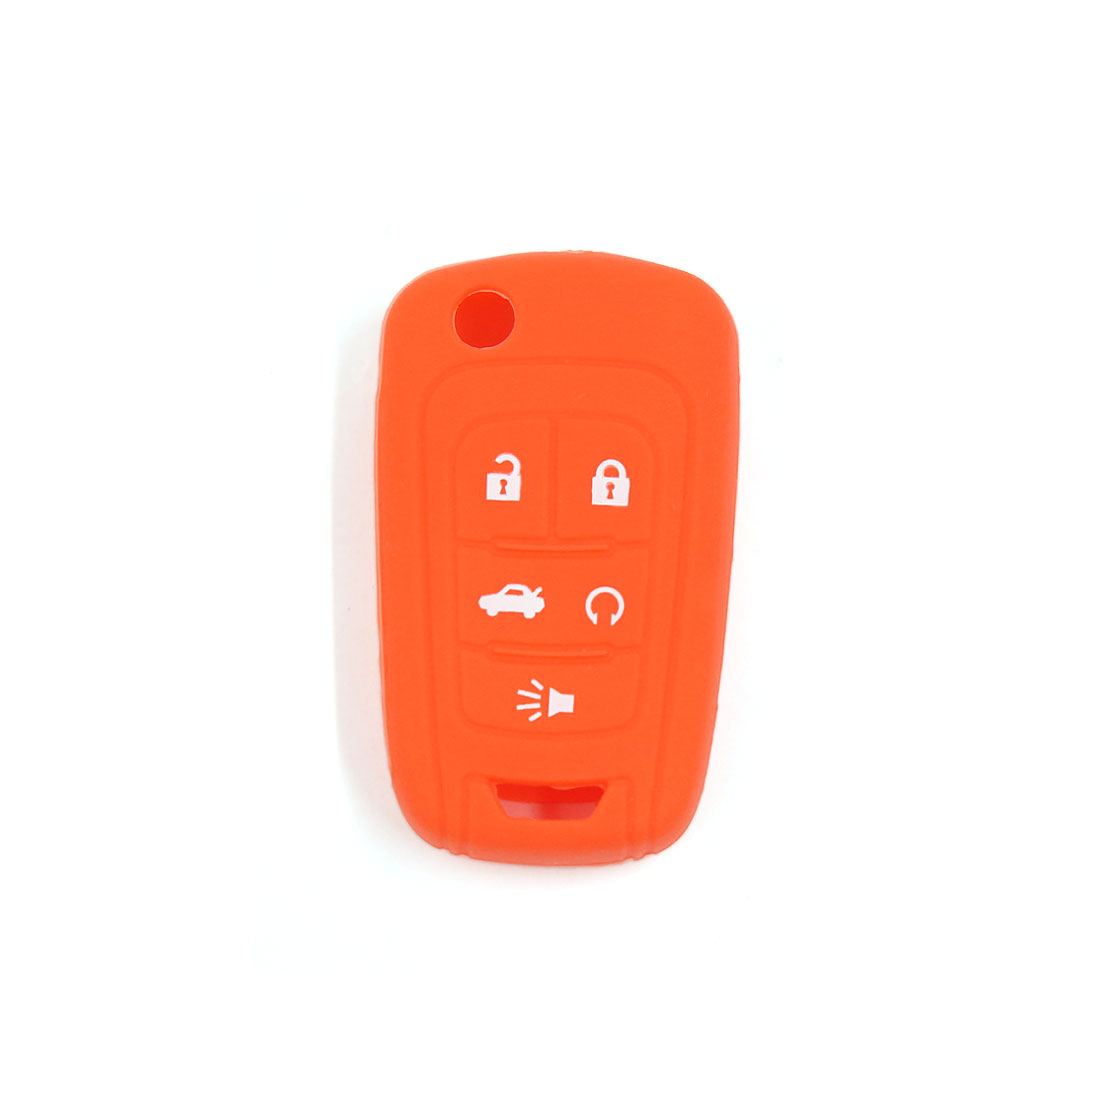 5 Buttons Orange Silicone Key Fob Case Holder Protector Cover Fits for Chevrolet